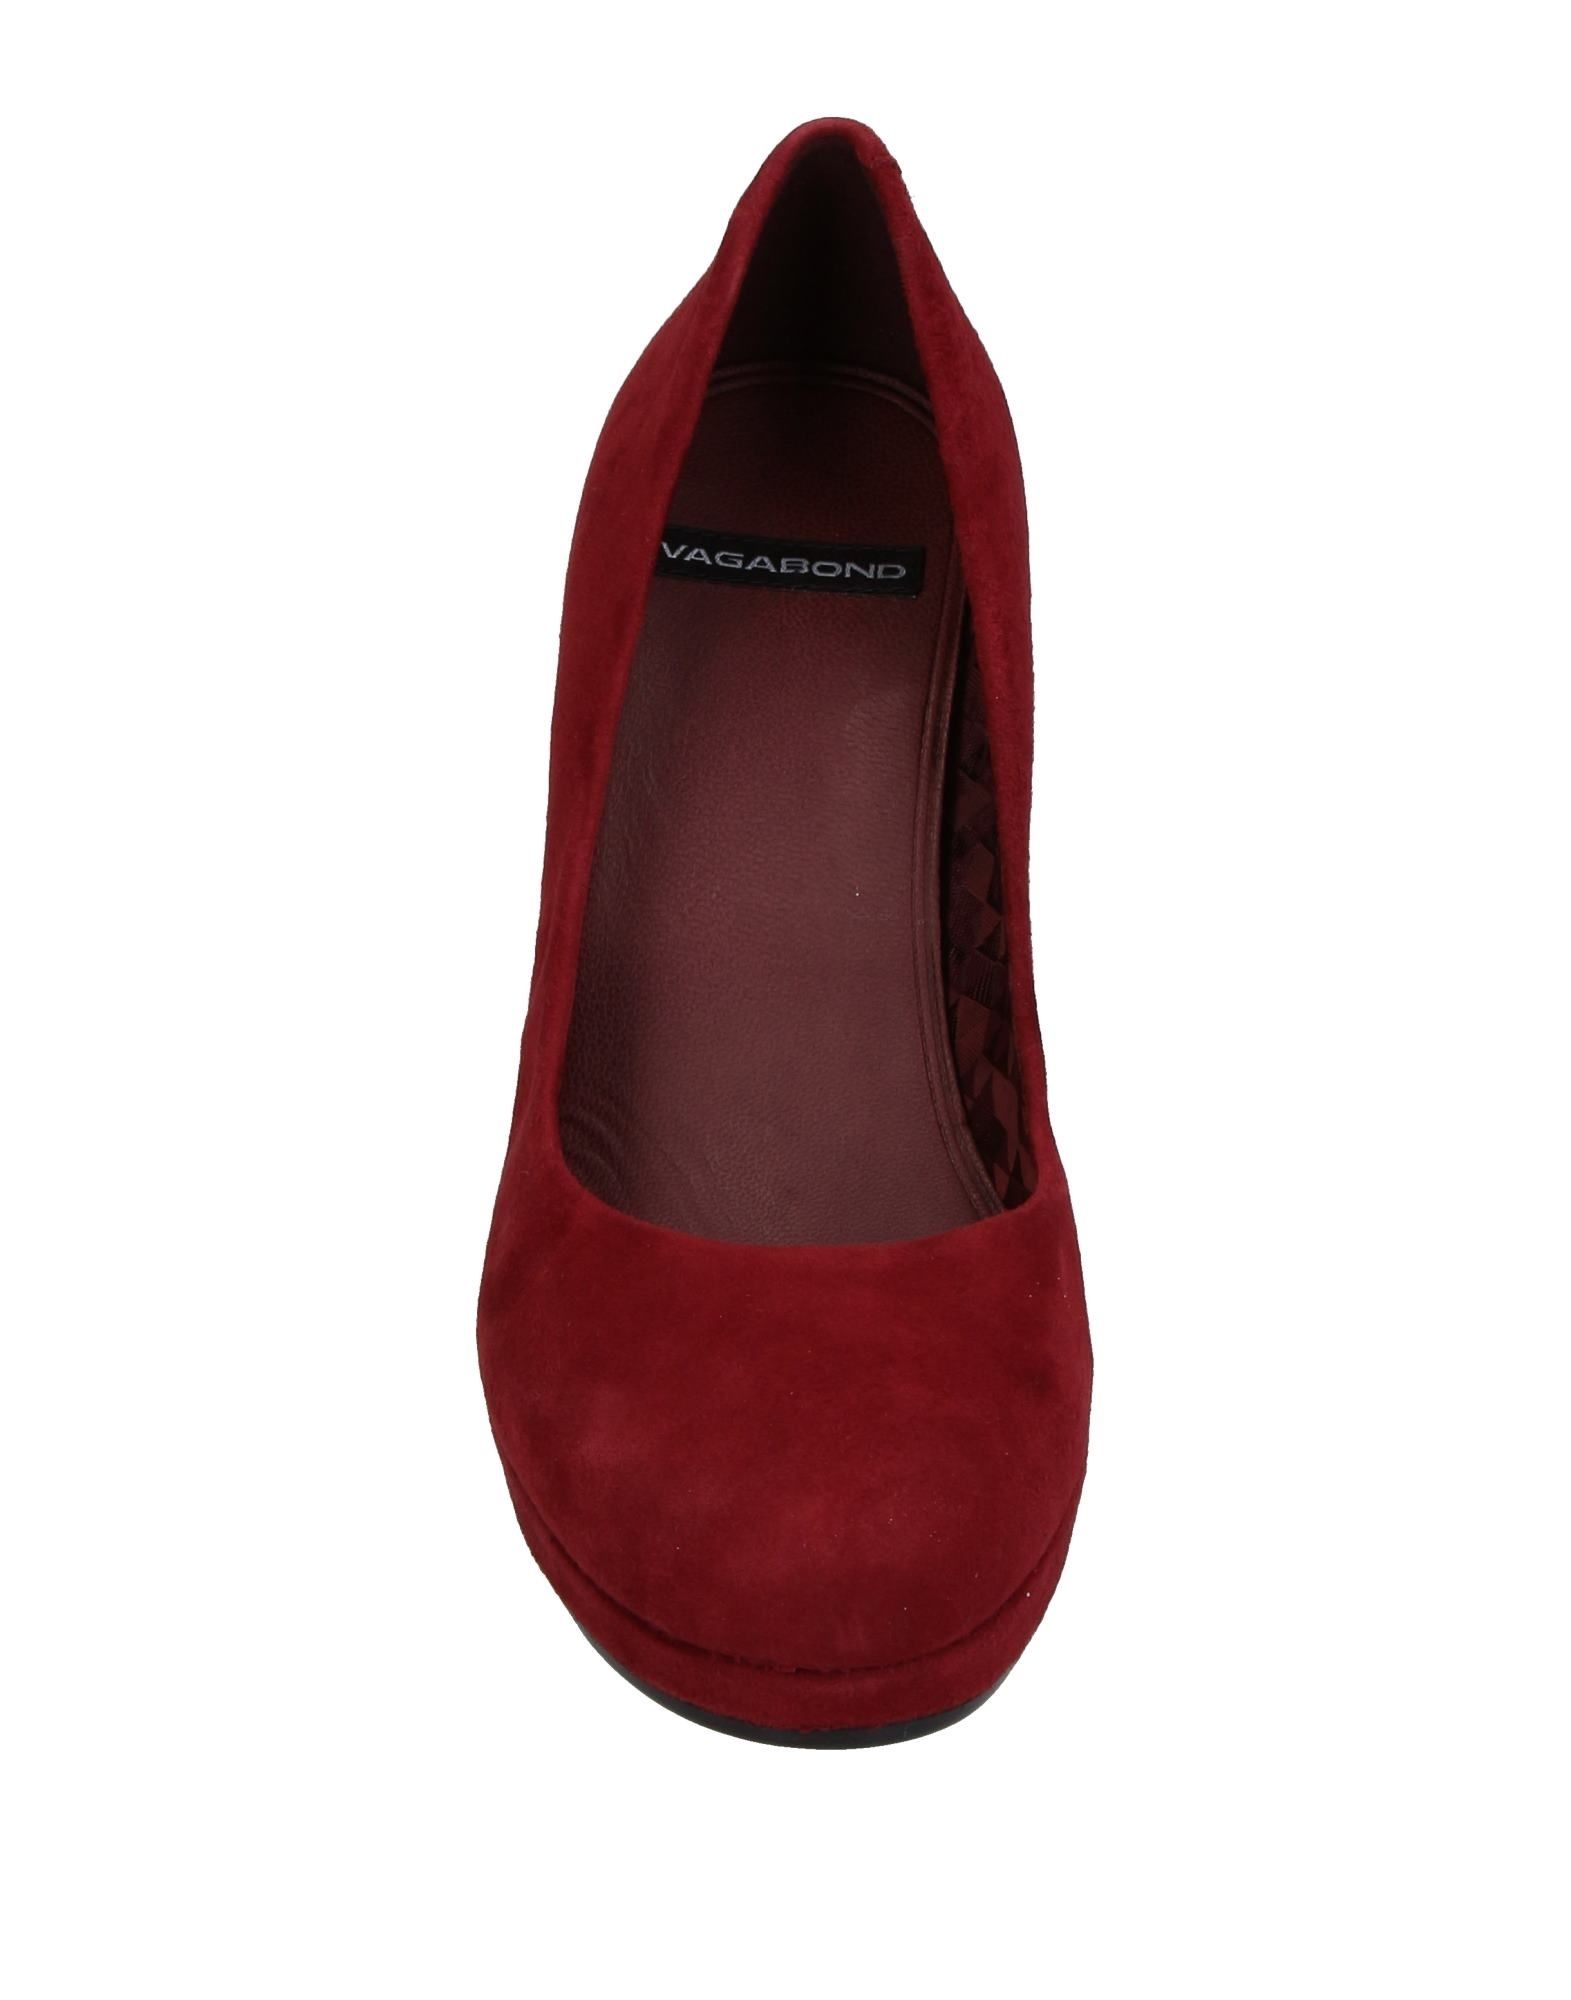 Escarpins Vagabond Shoemakers Femme - Escarpins Vagabond Shoemakers sur